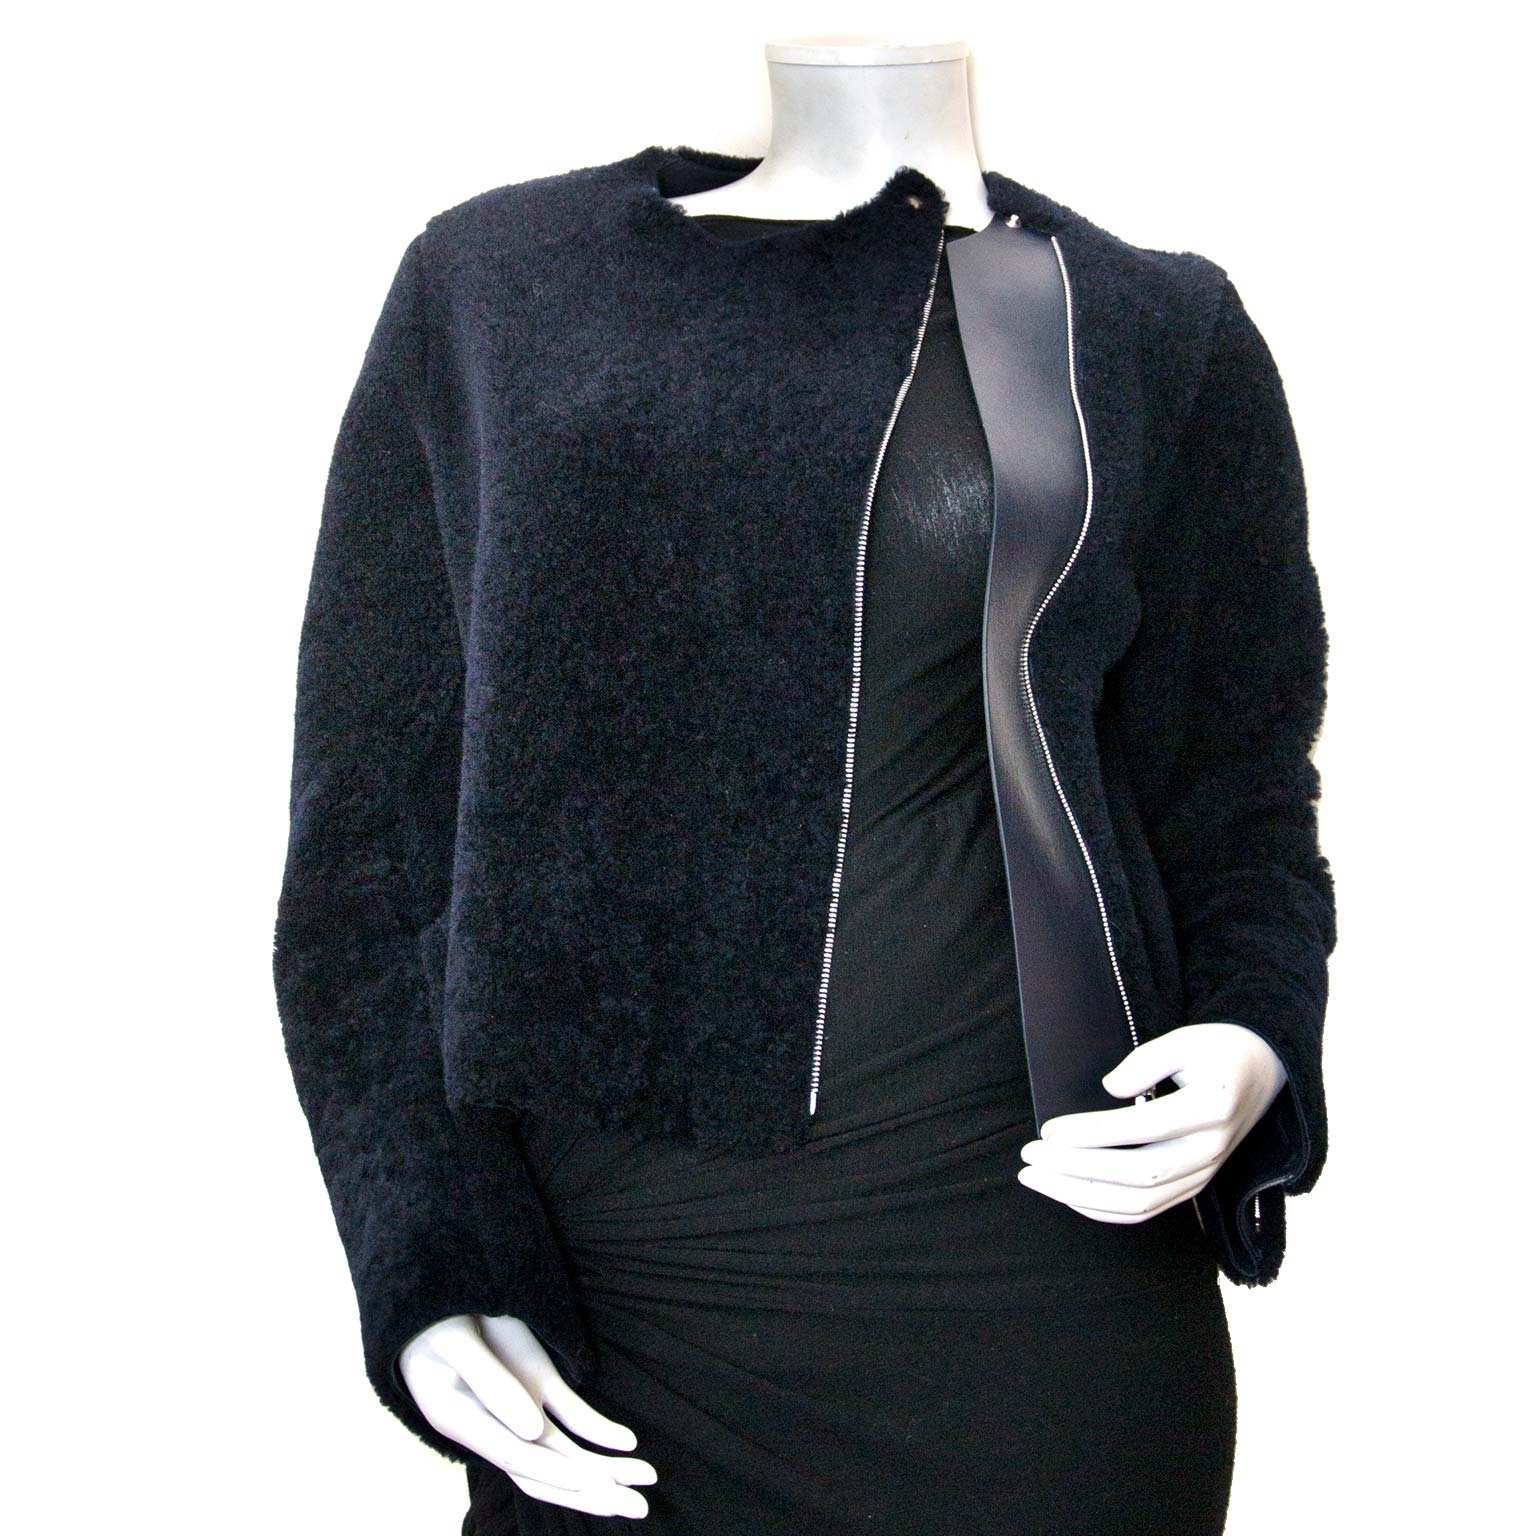 céline blue teddy jacket now for sale at labellov vintage fashion webshop belgium